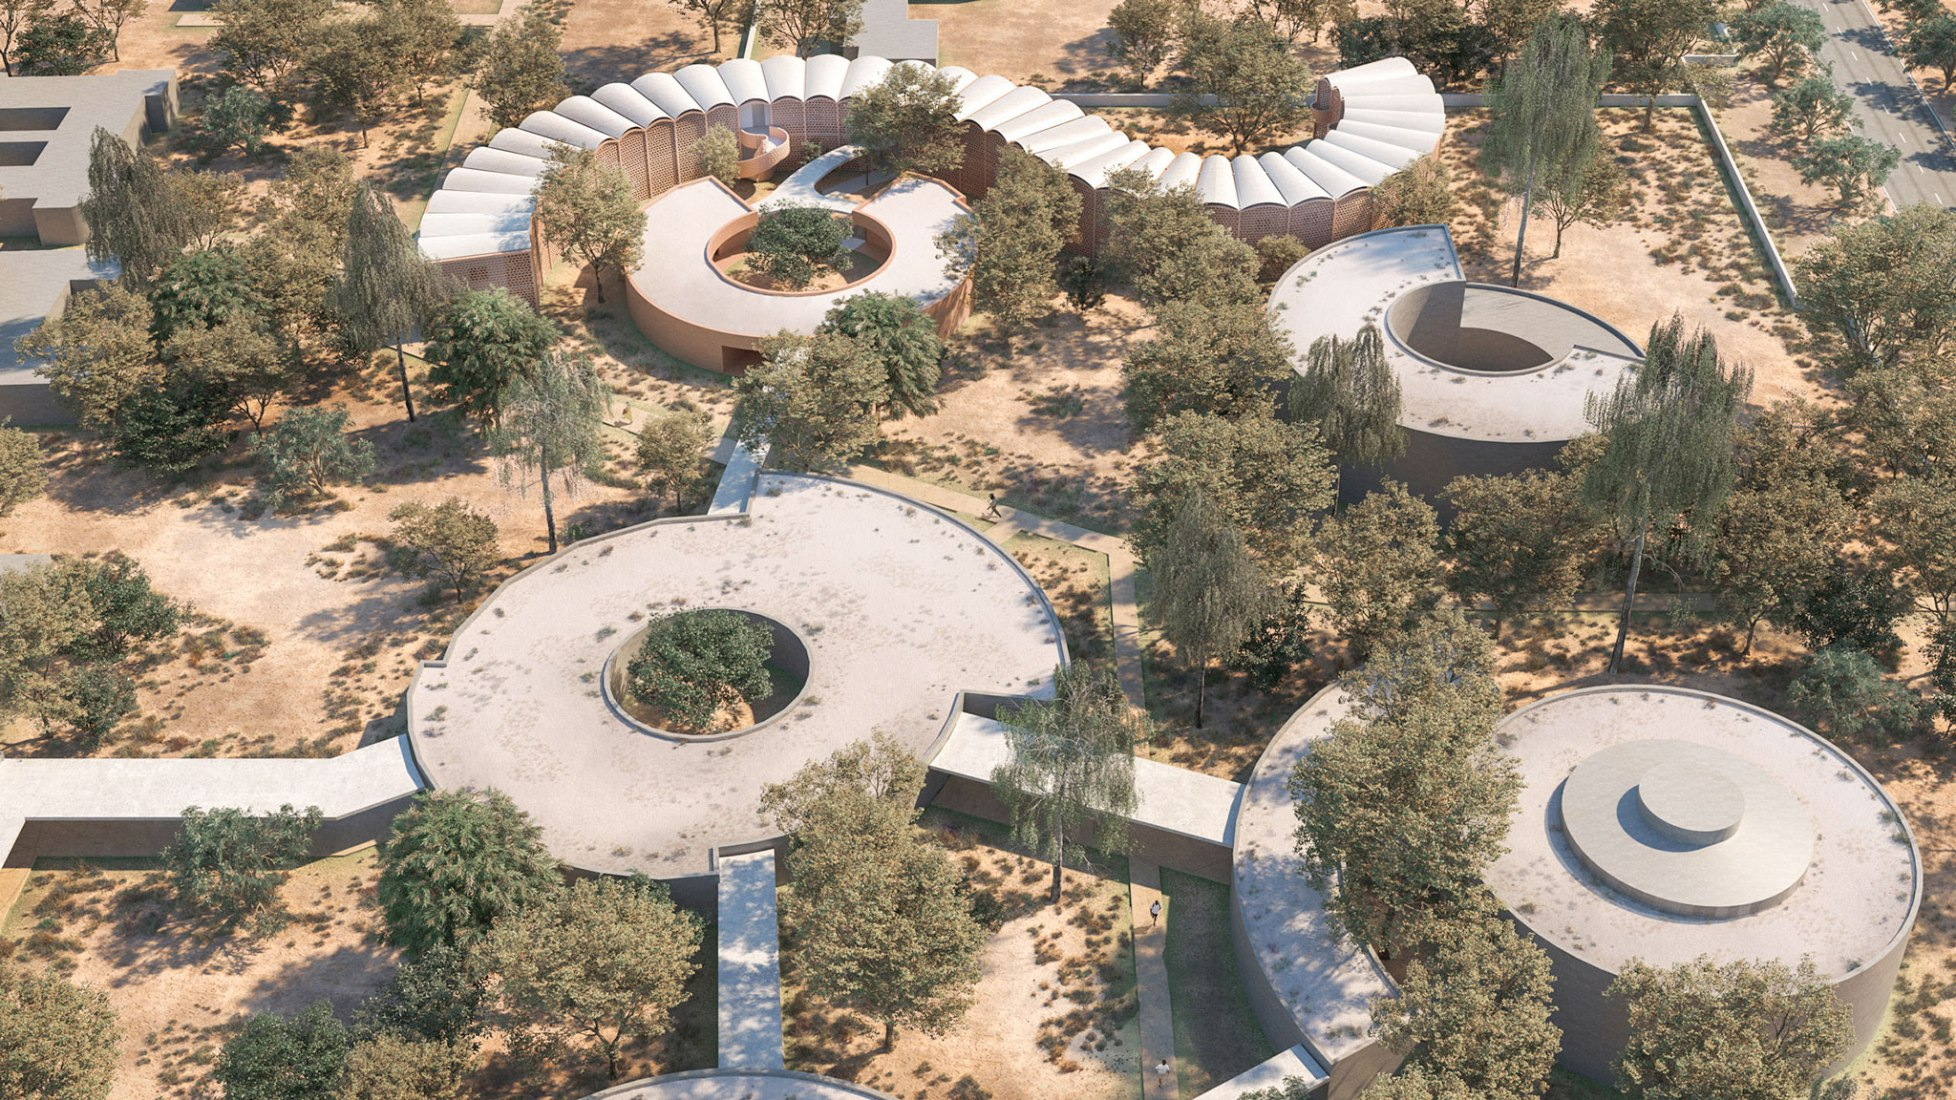 Rendering. Tambacounda Hospital by Manuel Herz Architects. Image by Play-Time